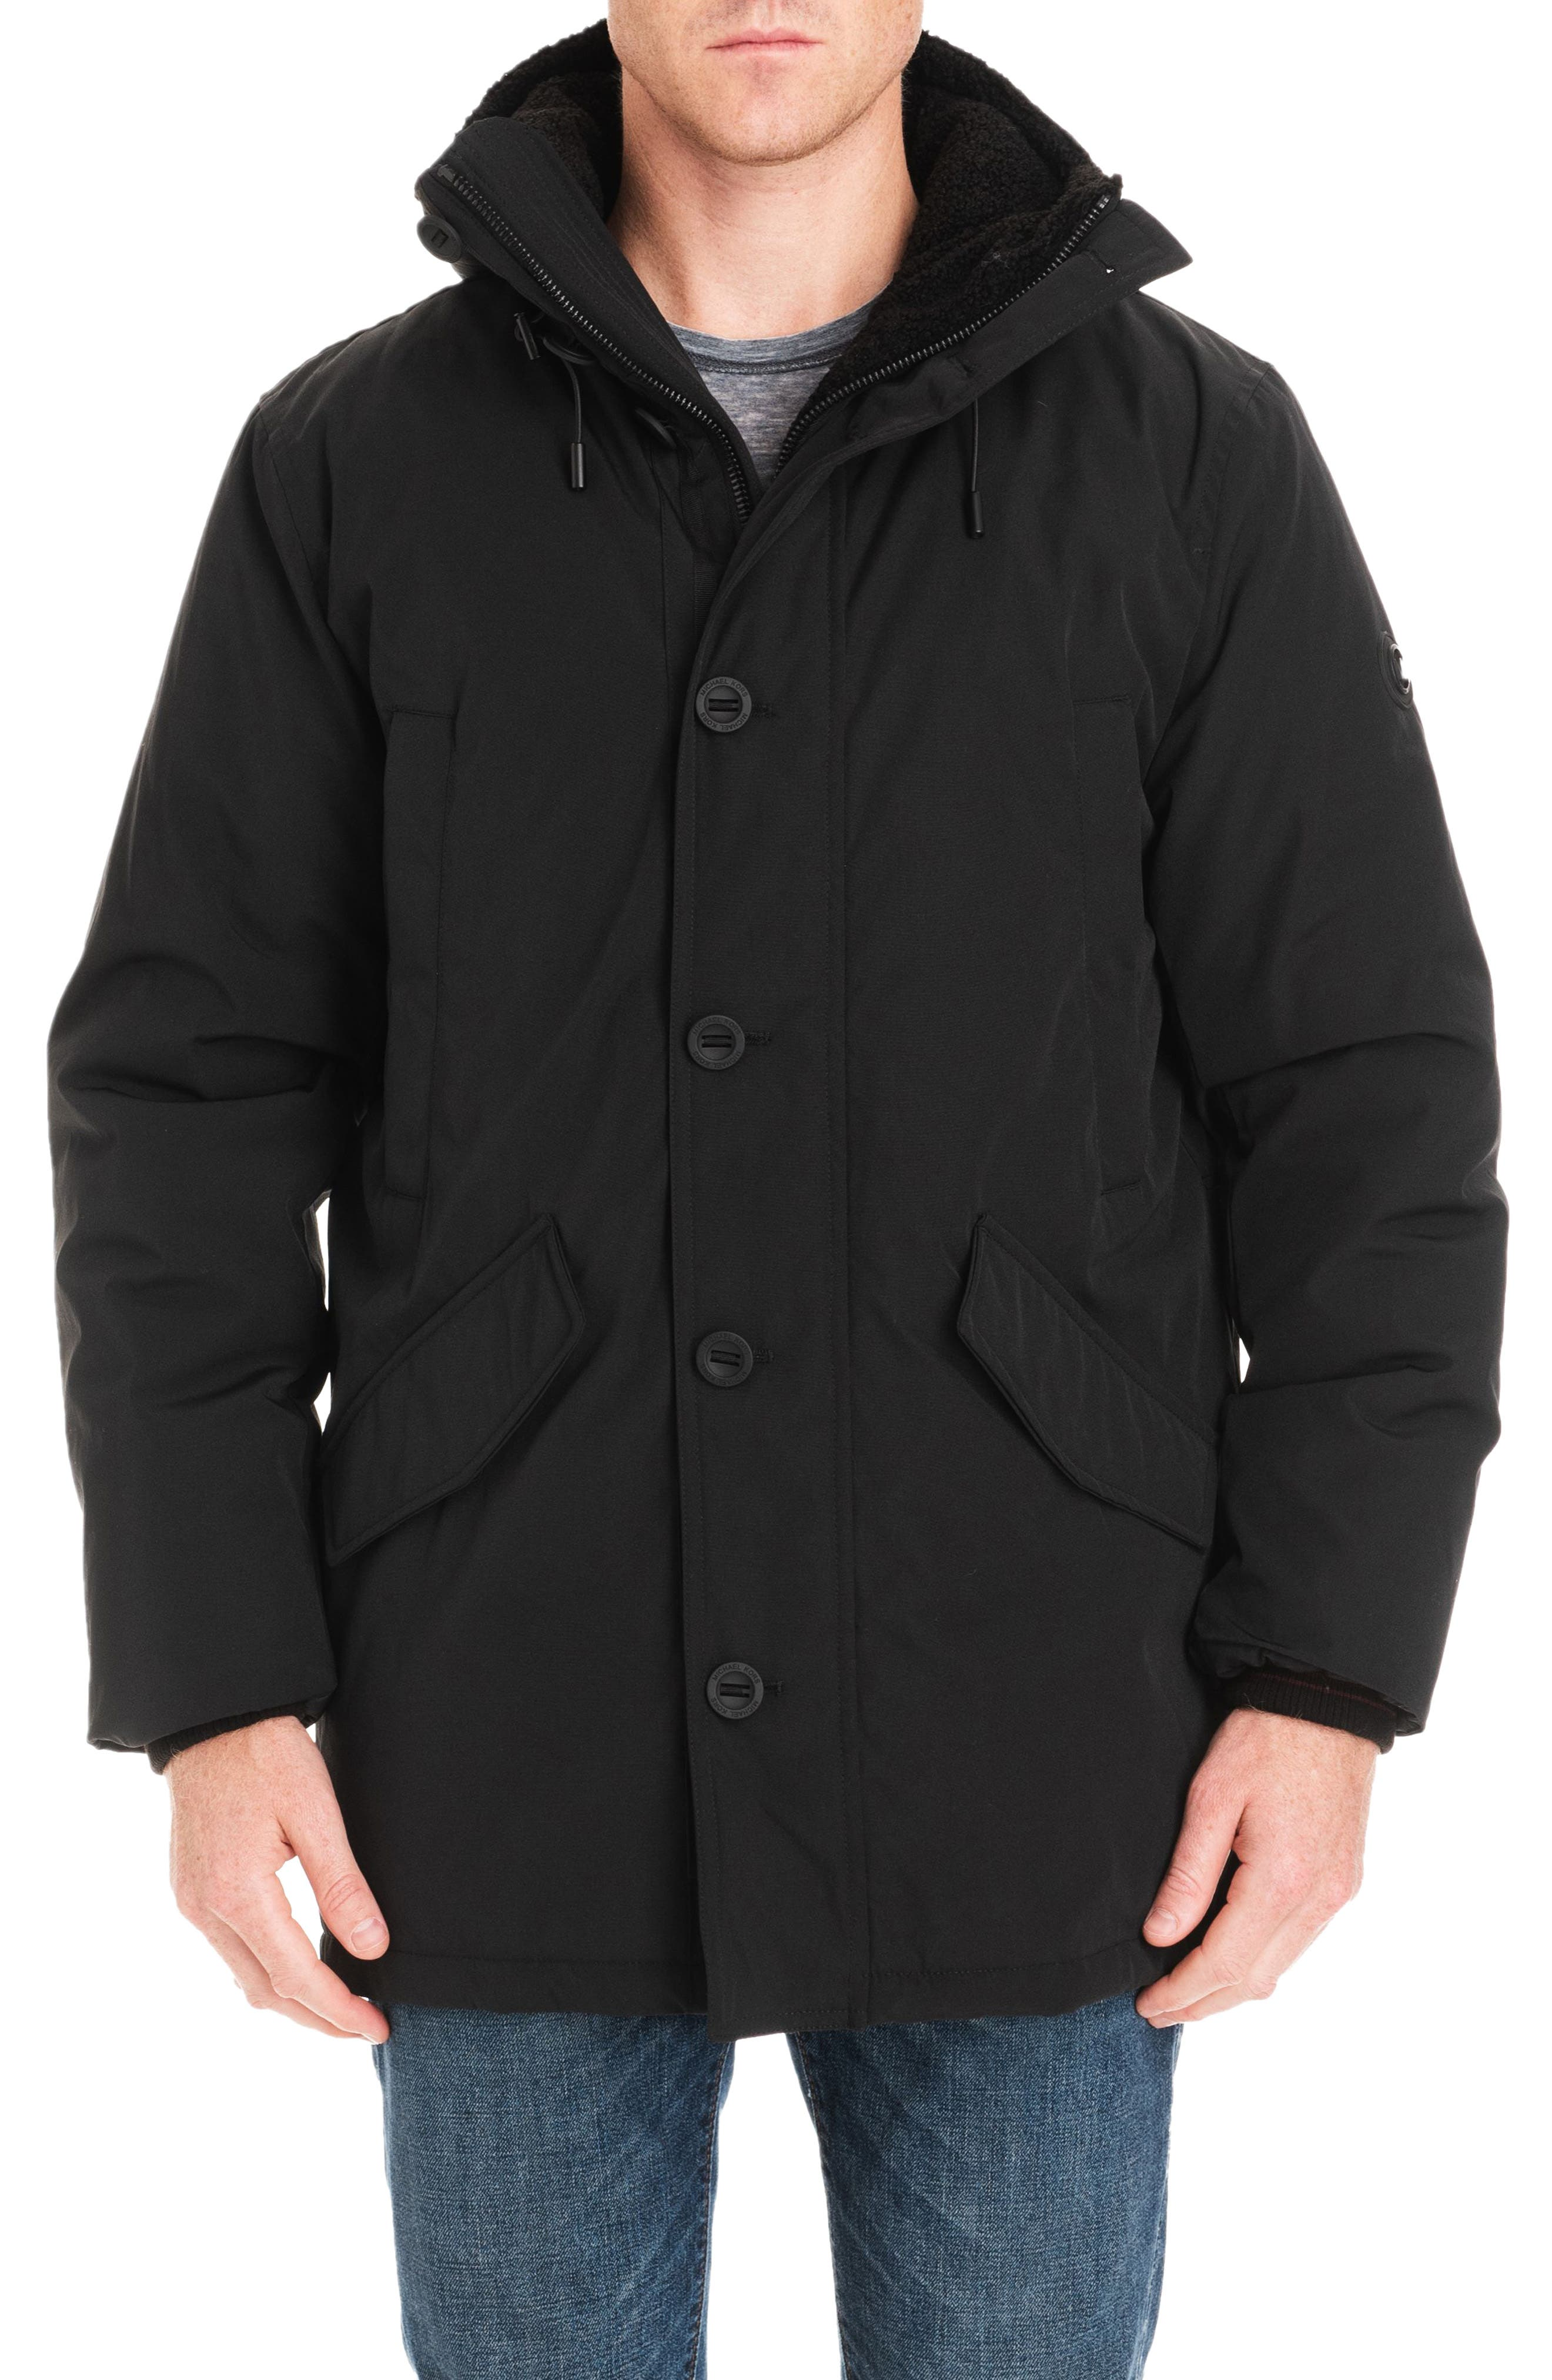 MICHAEL KORS,                             Lafayette Water Resistant Coat with Faux Shearling Lining,                             Main thumbnail 1, color,                             001